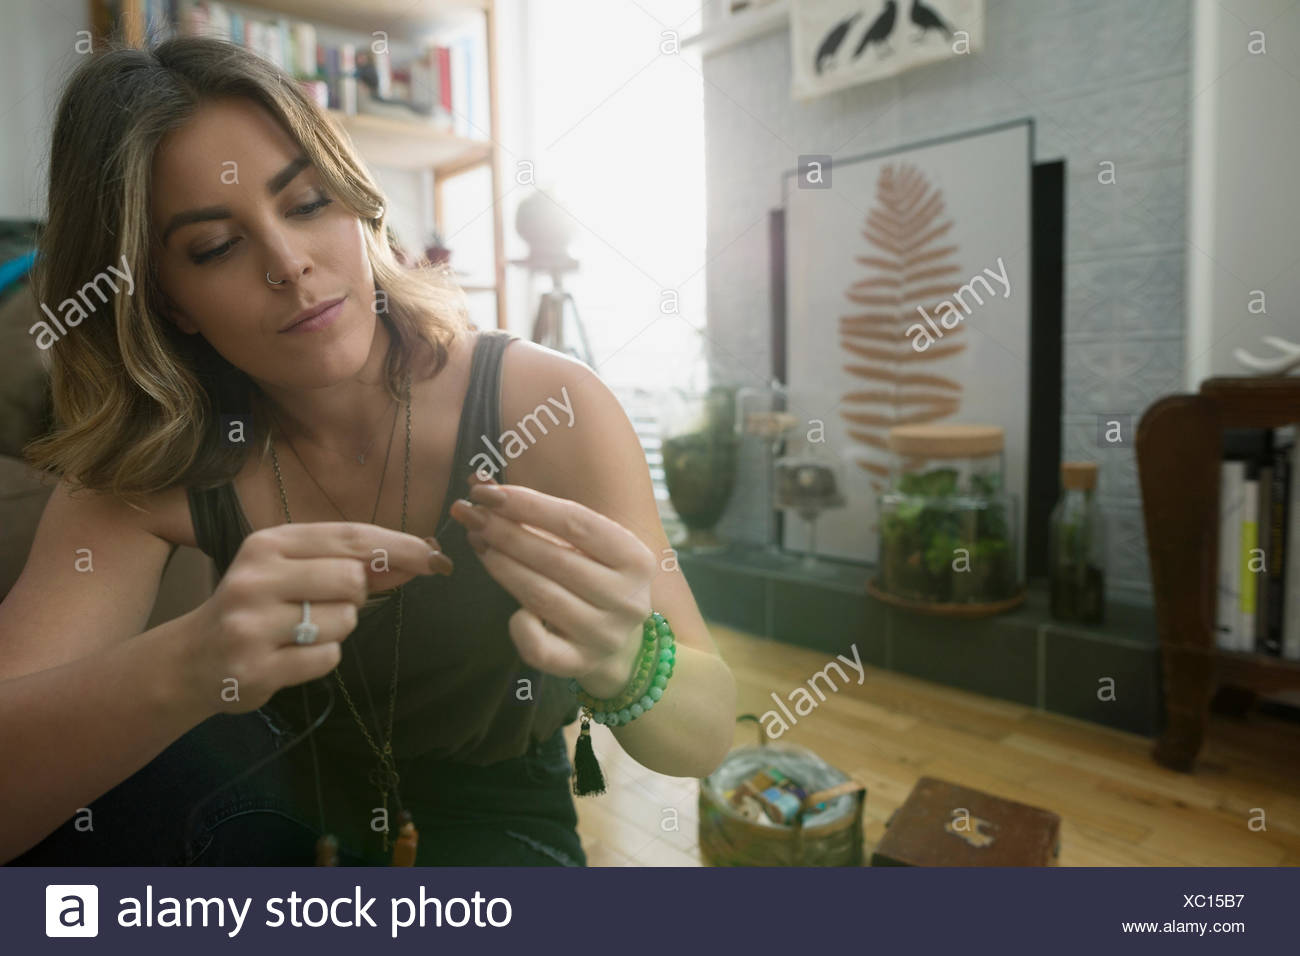 Focused woman making jewelry in living room - Stock Image